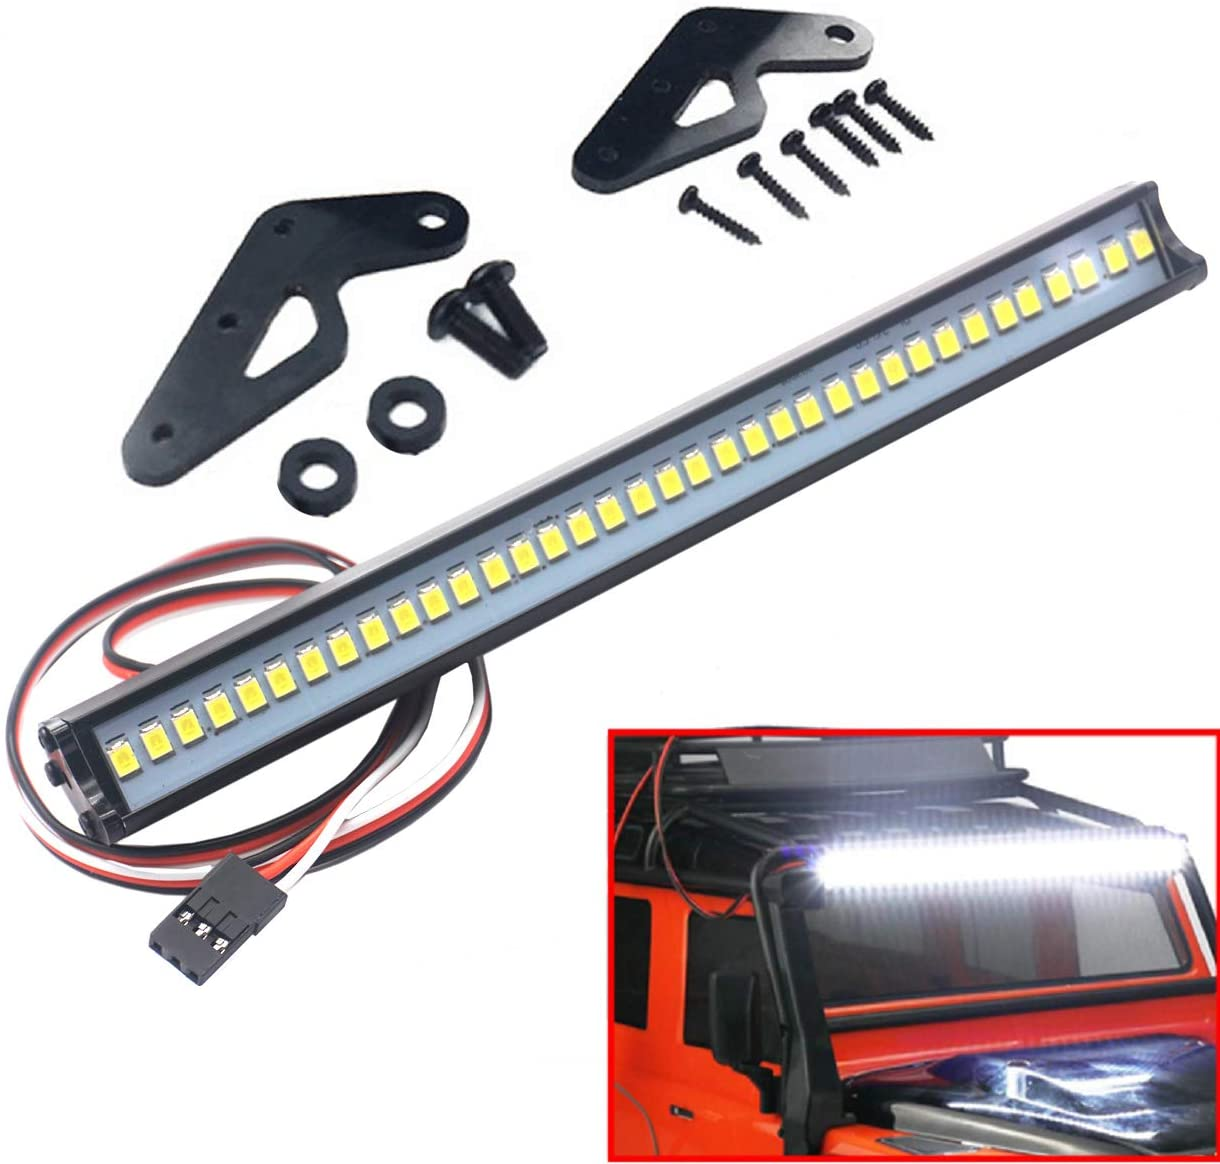 ShareGoo Super Bright 36 LED Light Bar Metal Roof Lamp Lights for Traxxas TRX-4 90046 D90 Axial SCX10 1/10 RC Crawler,150mm/5.9